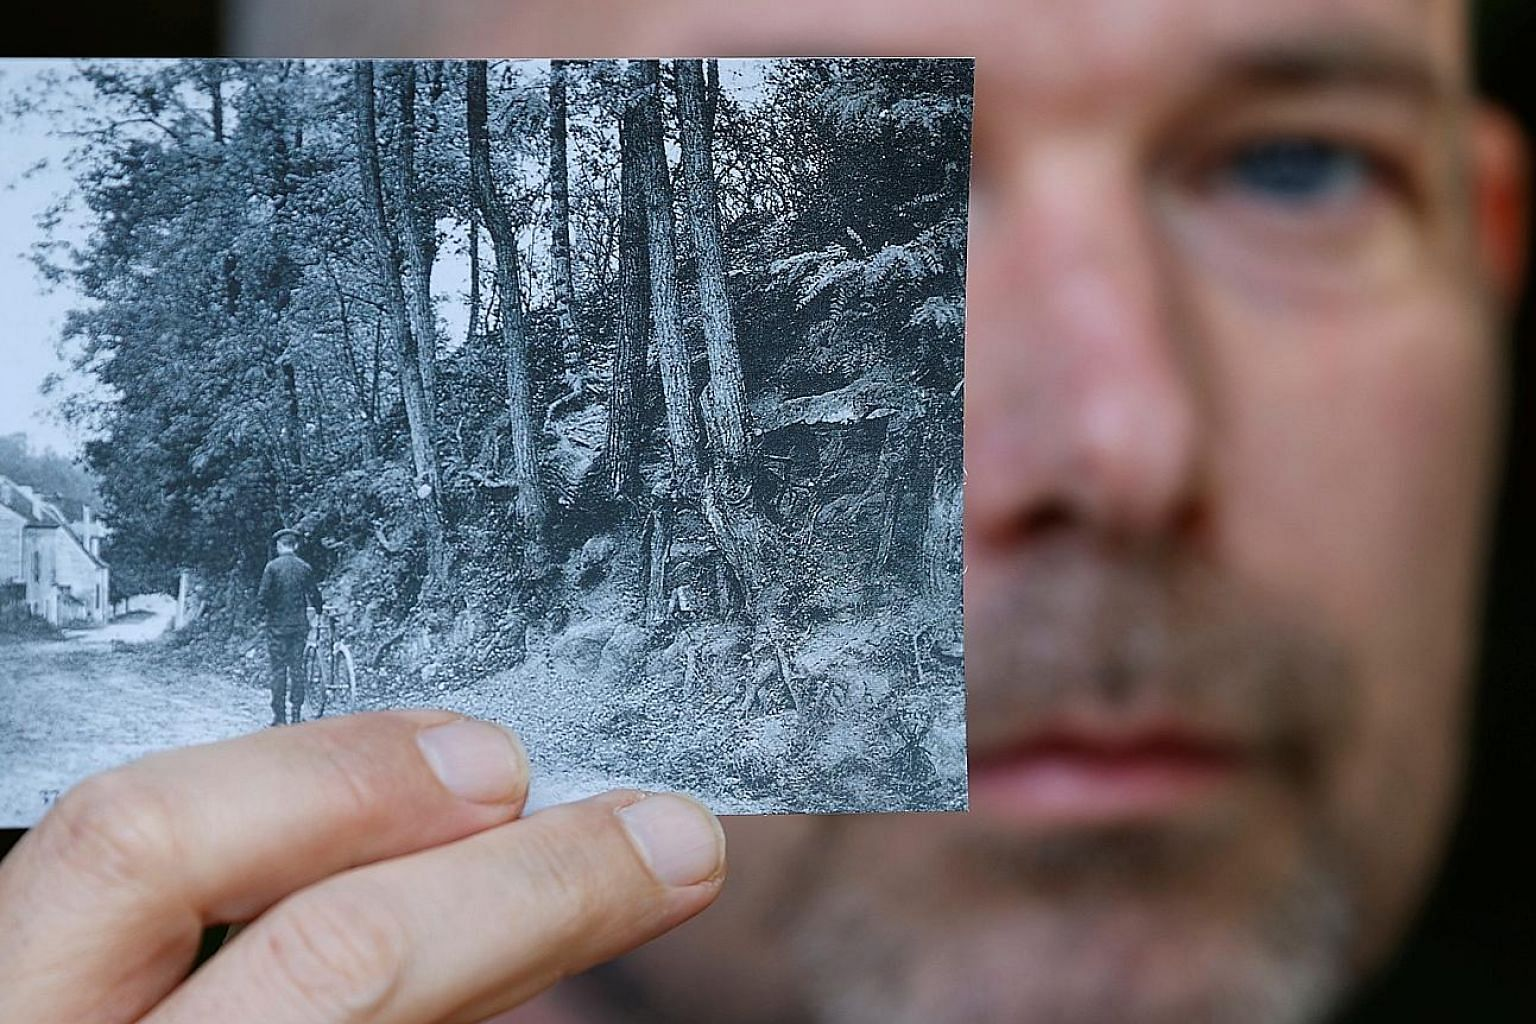 Researcher Wouter van der Veen, scientific director at the Van Gogh Institute, showing a copy of the postcard (left) which enabled him to identify the location of Vincent van Gogh's final painting, Tree Roots (below).